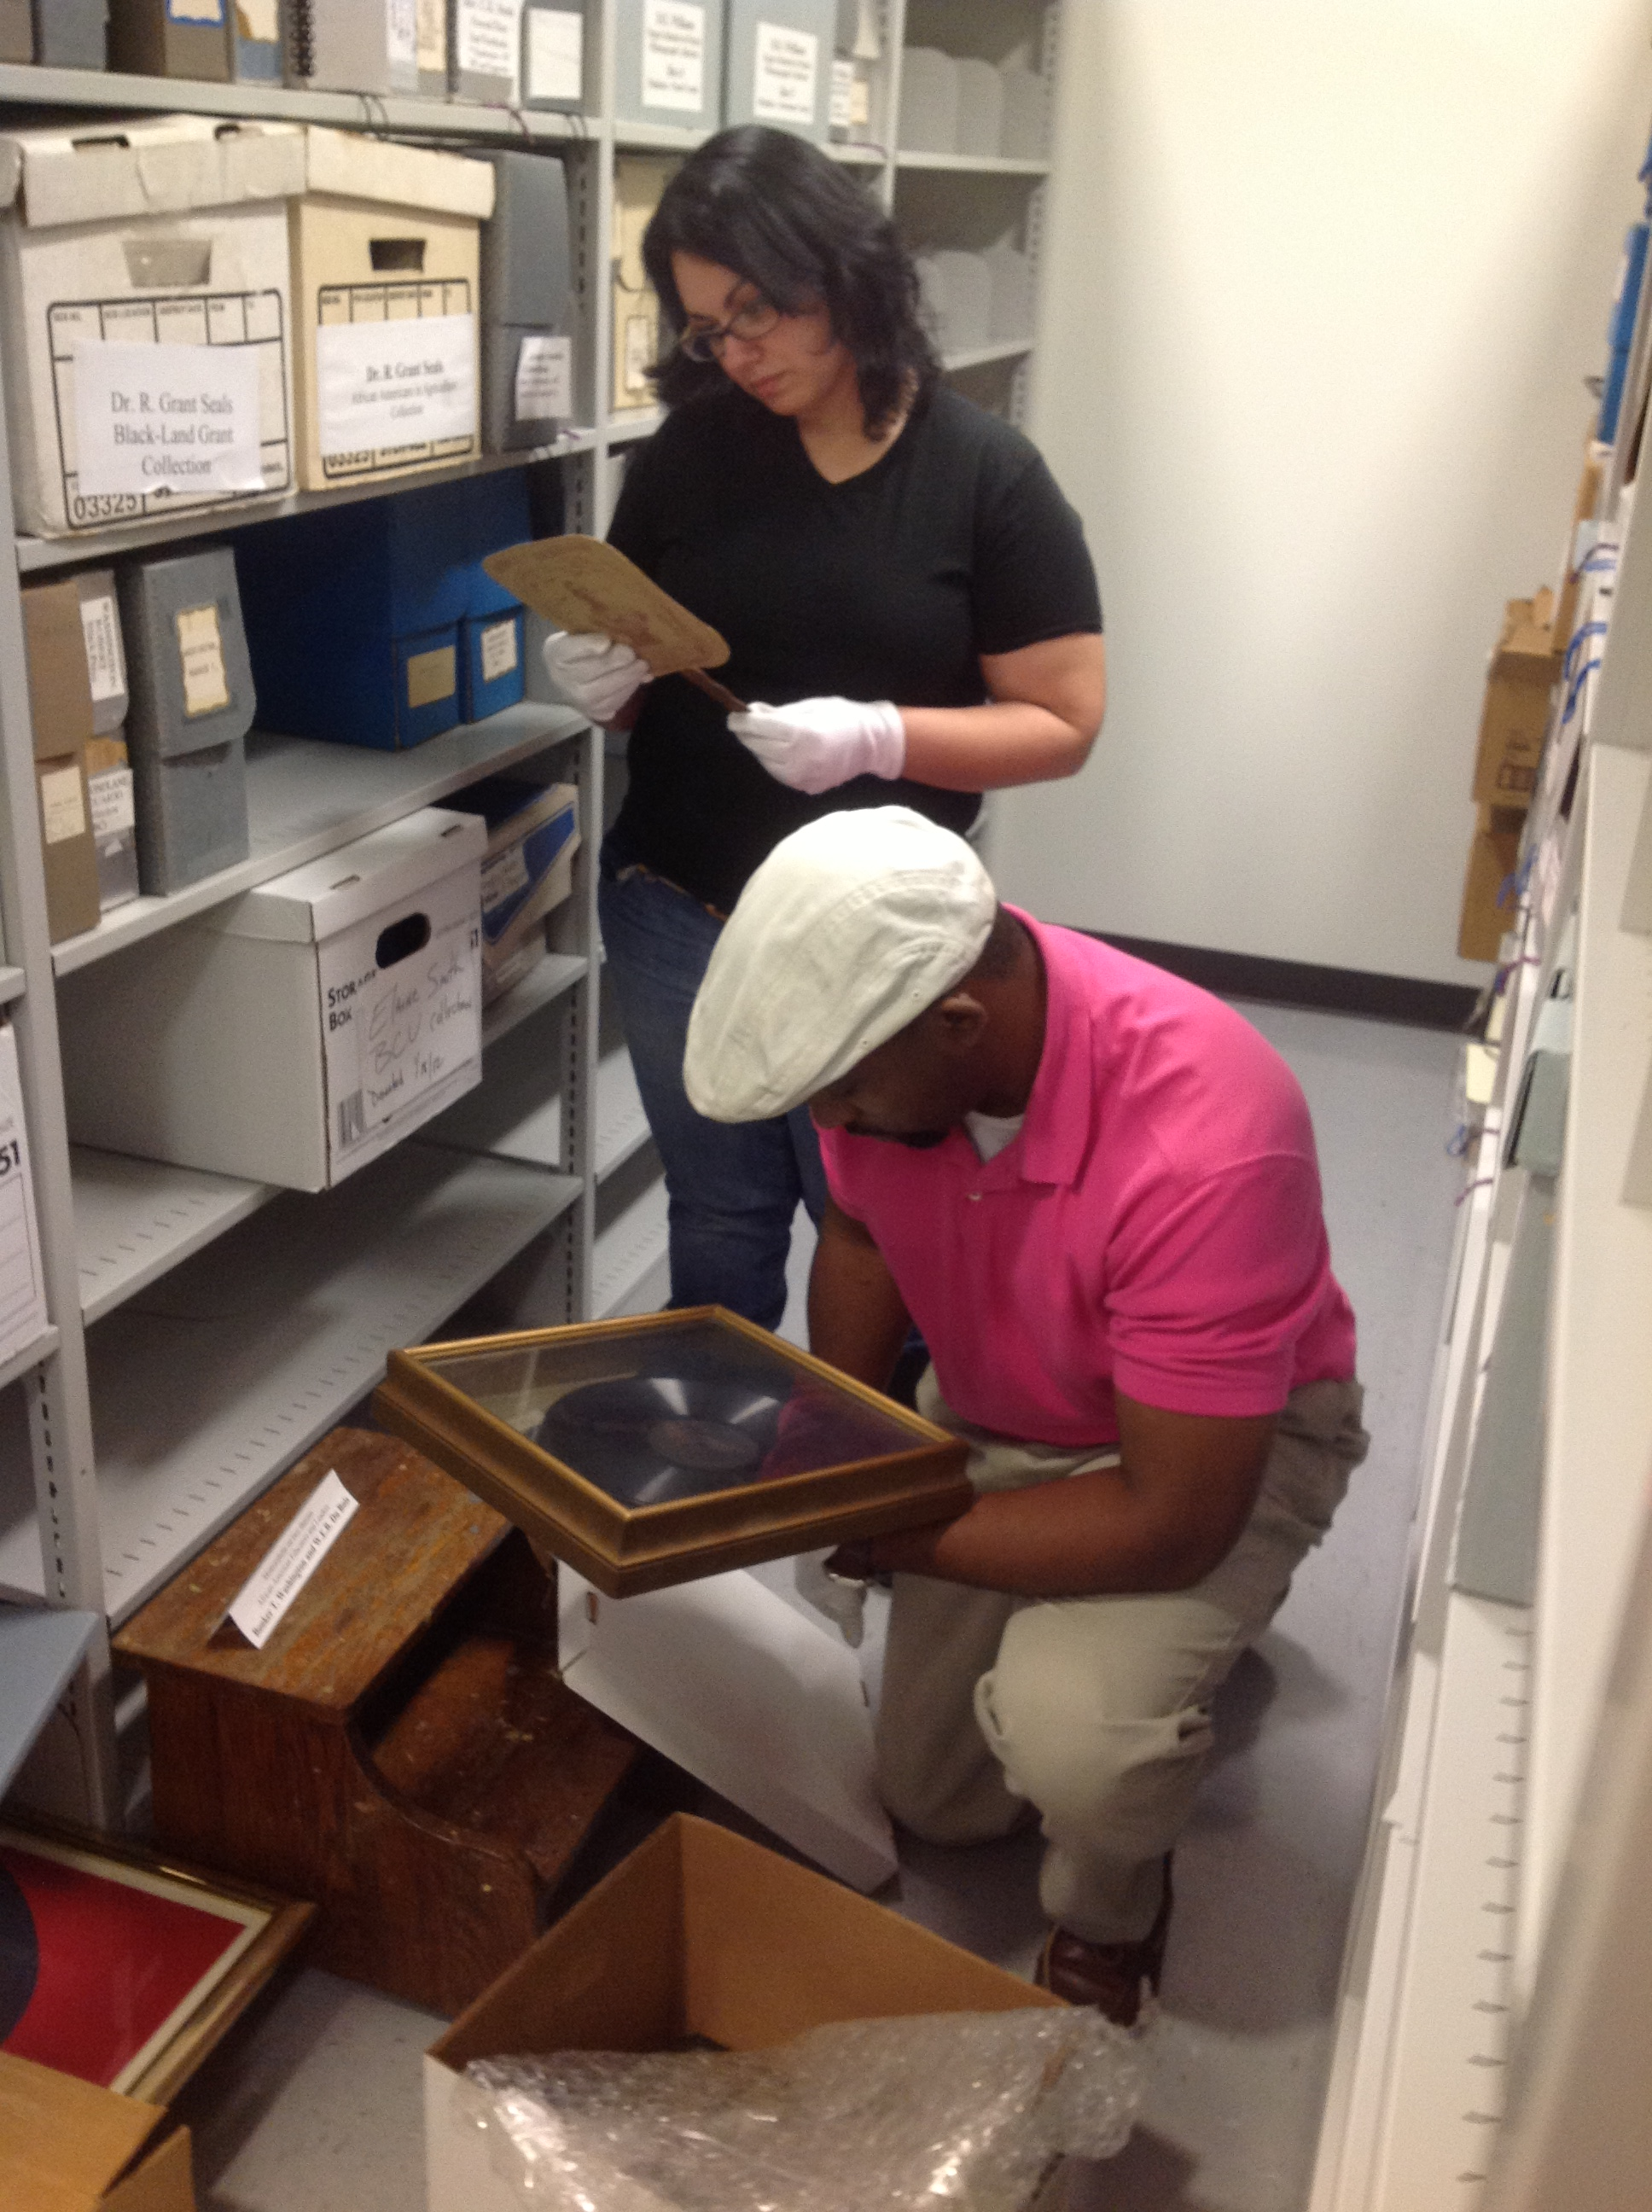 Students pull materials from archival stacks.